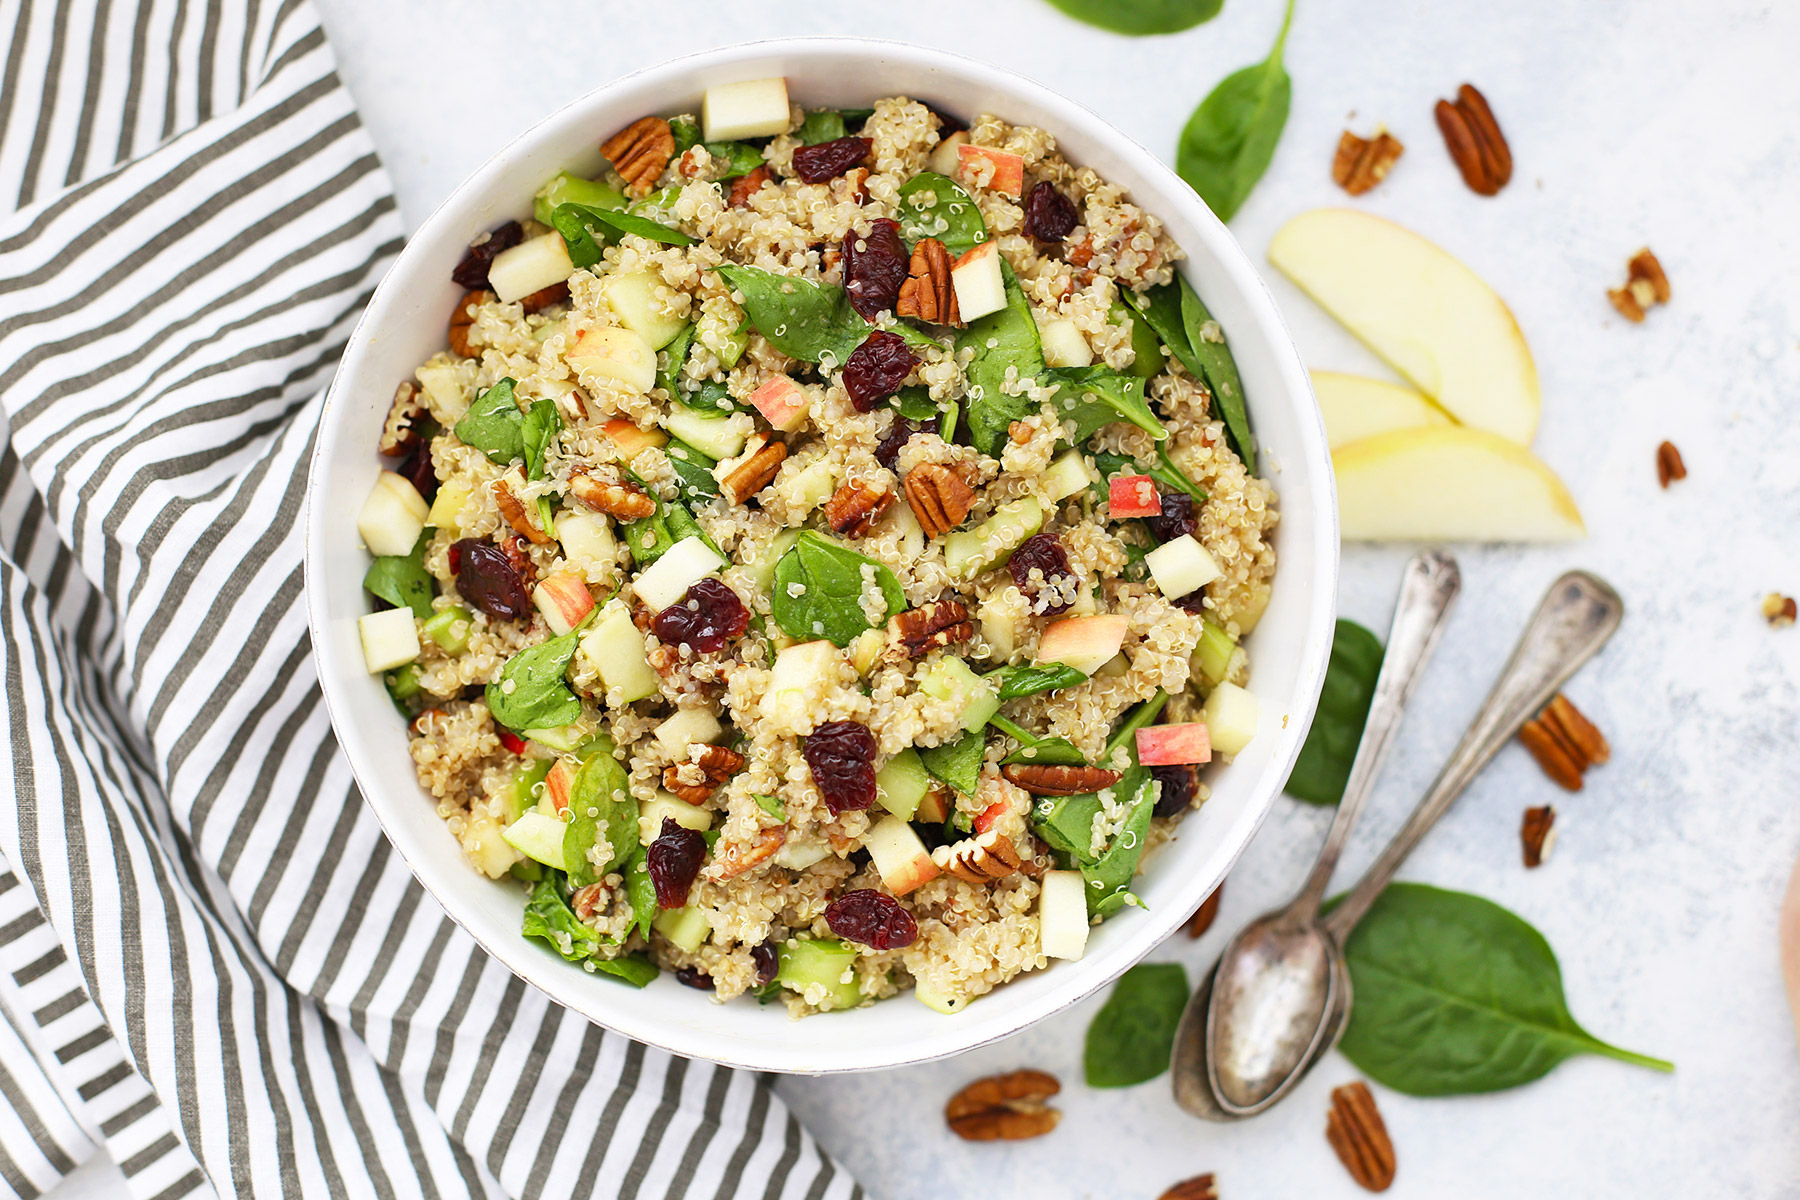 Meal Prep Powerhouse Quinoa Salad from One Lovely Life